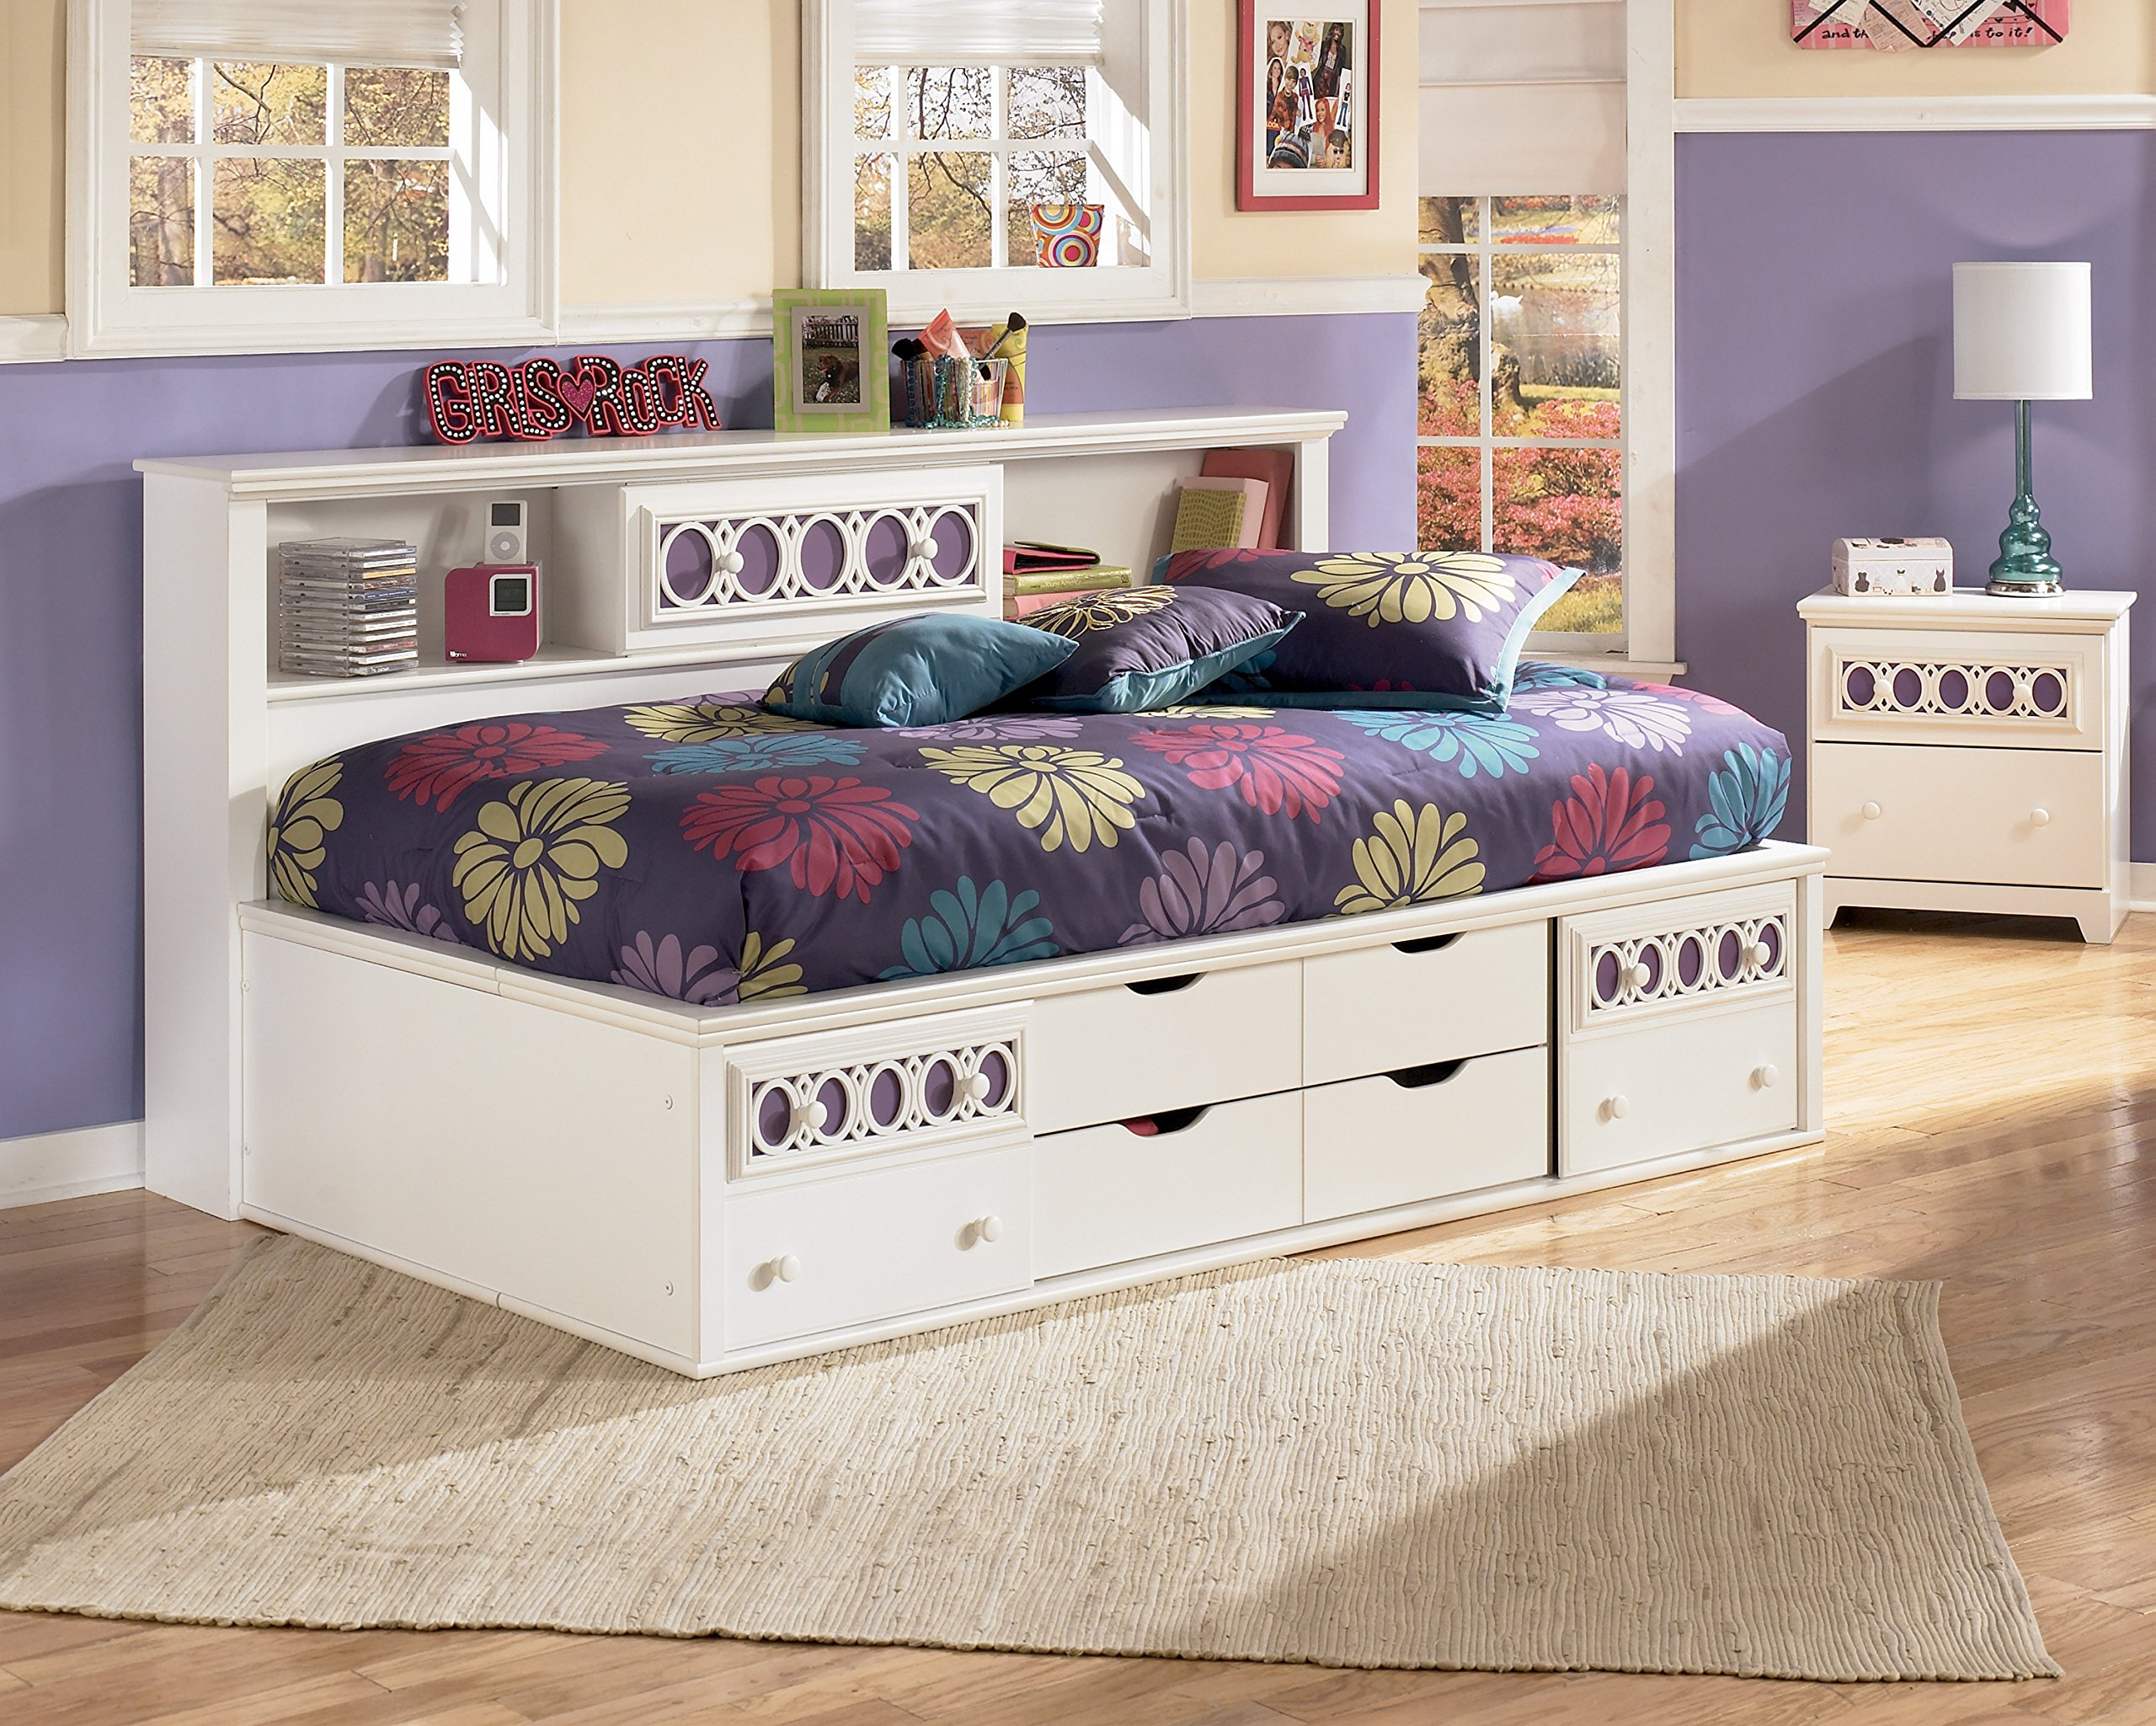 Day Beds Twin With Storage Drawers Amazon Com